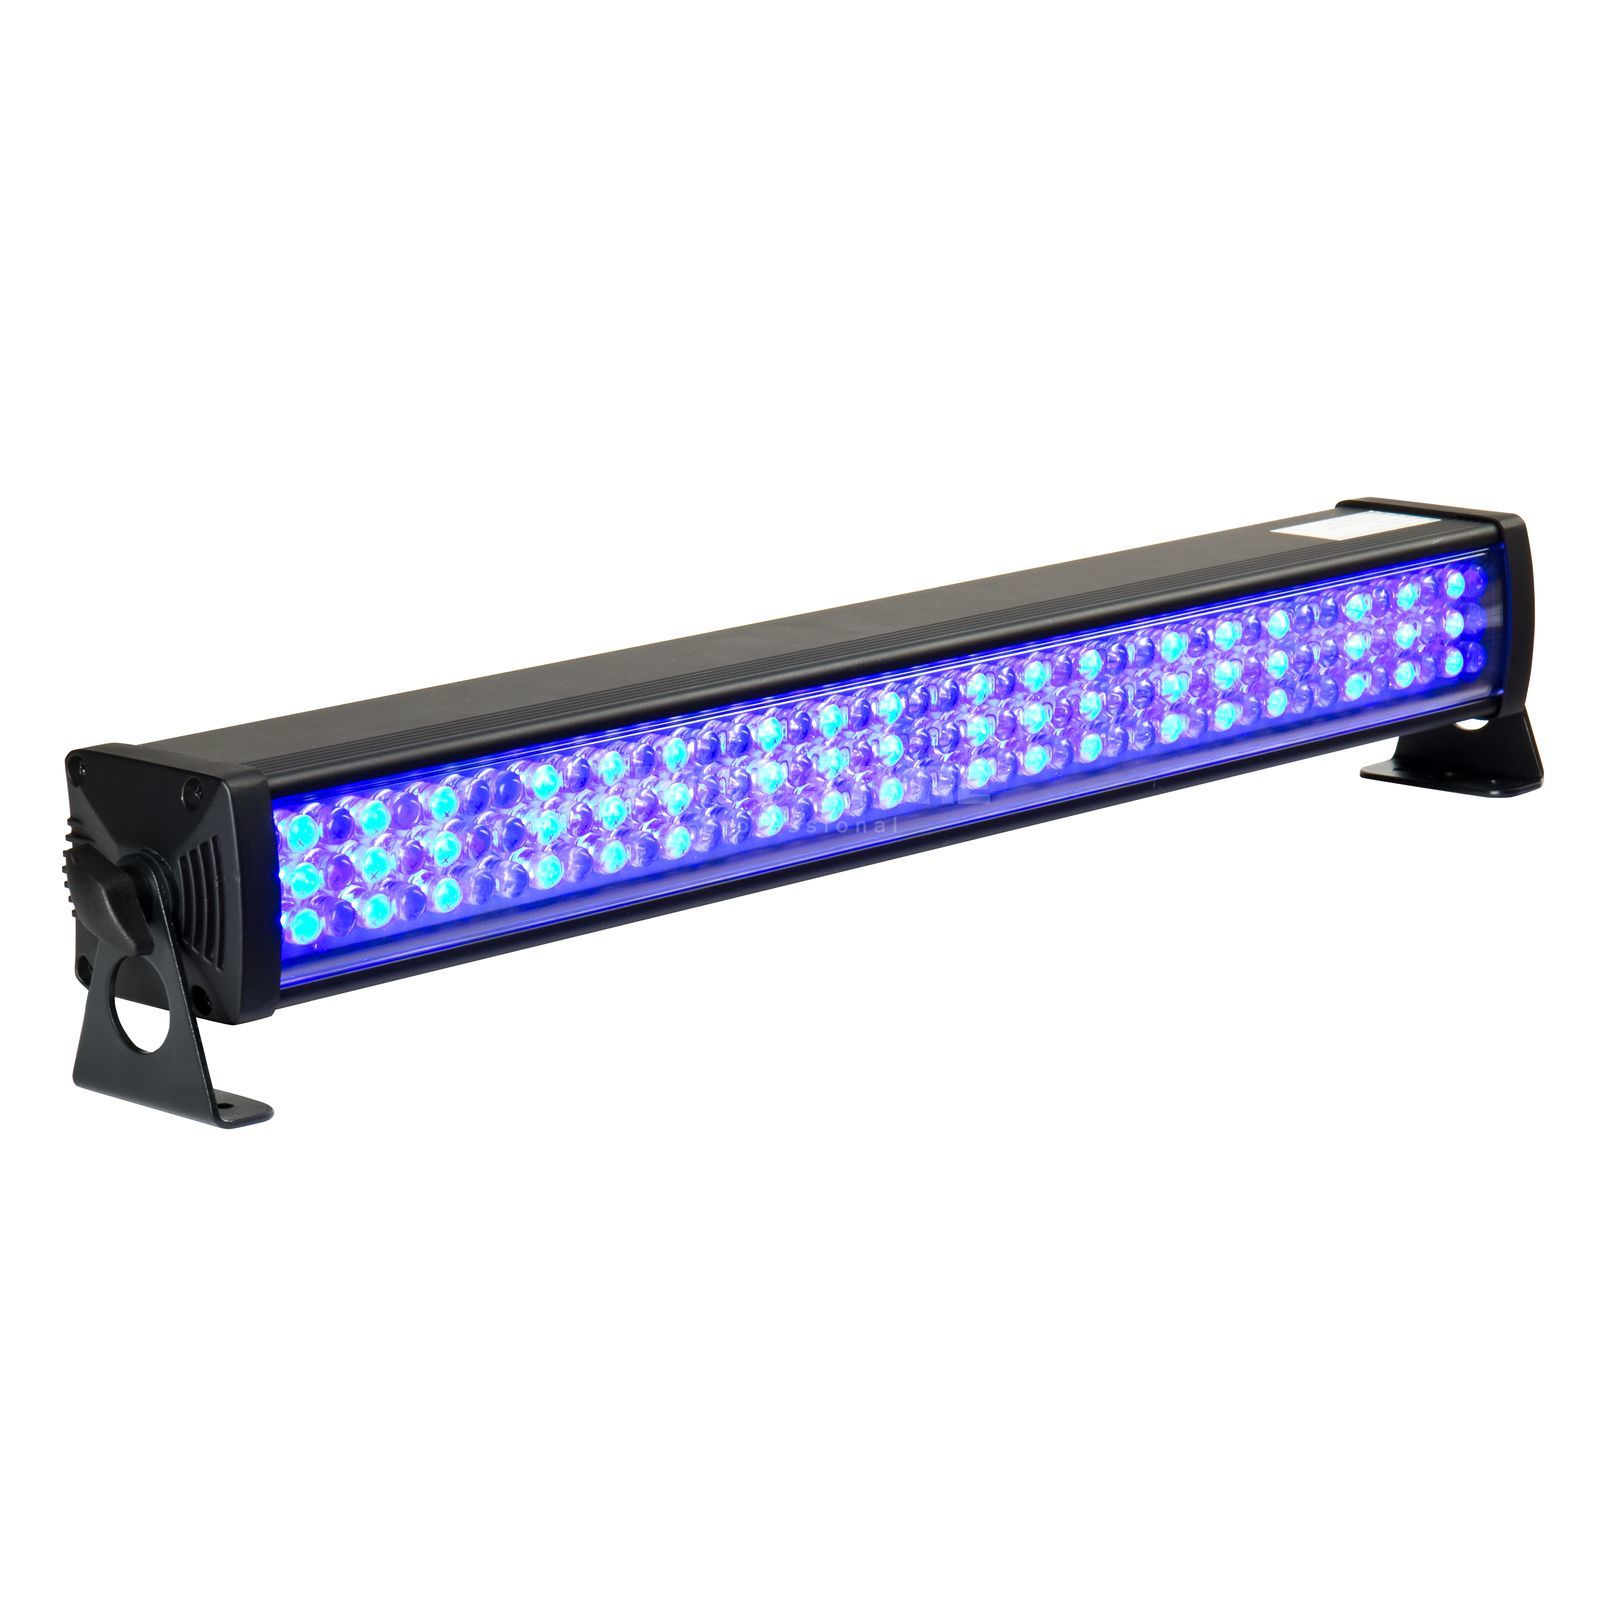 lightmaXX LED RGB Color Bar Short 126x10mm LEDs DMX Wall Washer Produktbillede